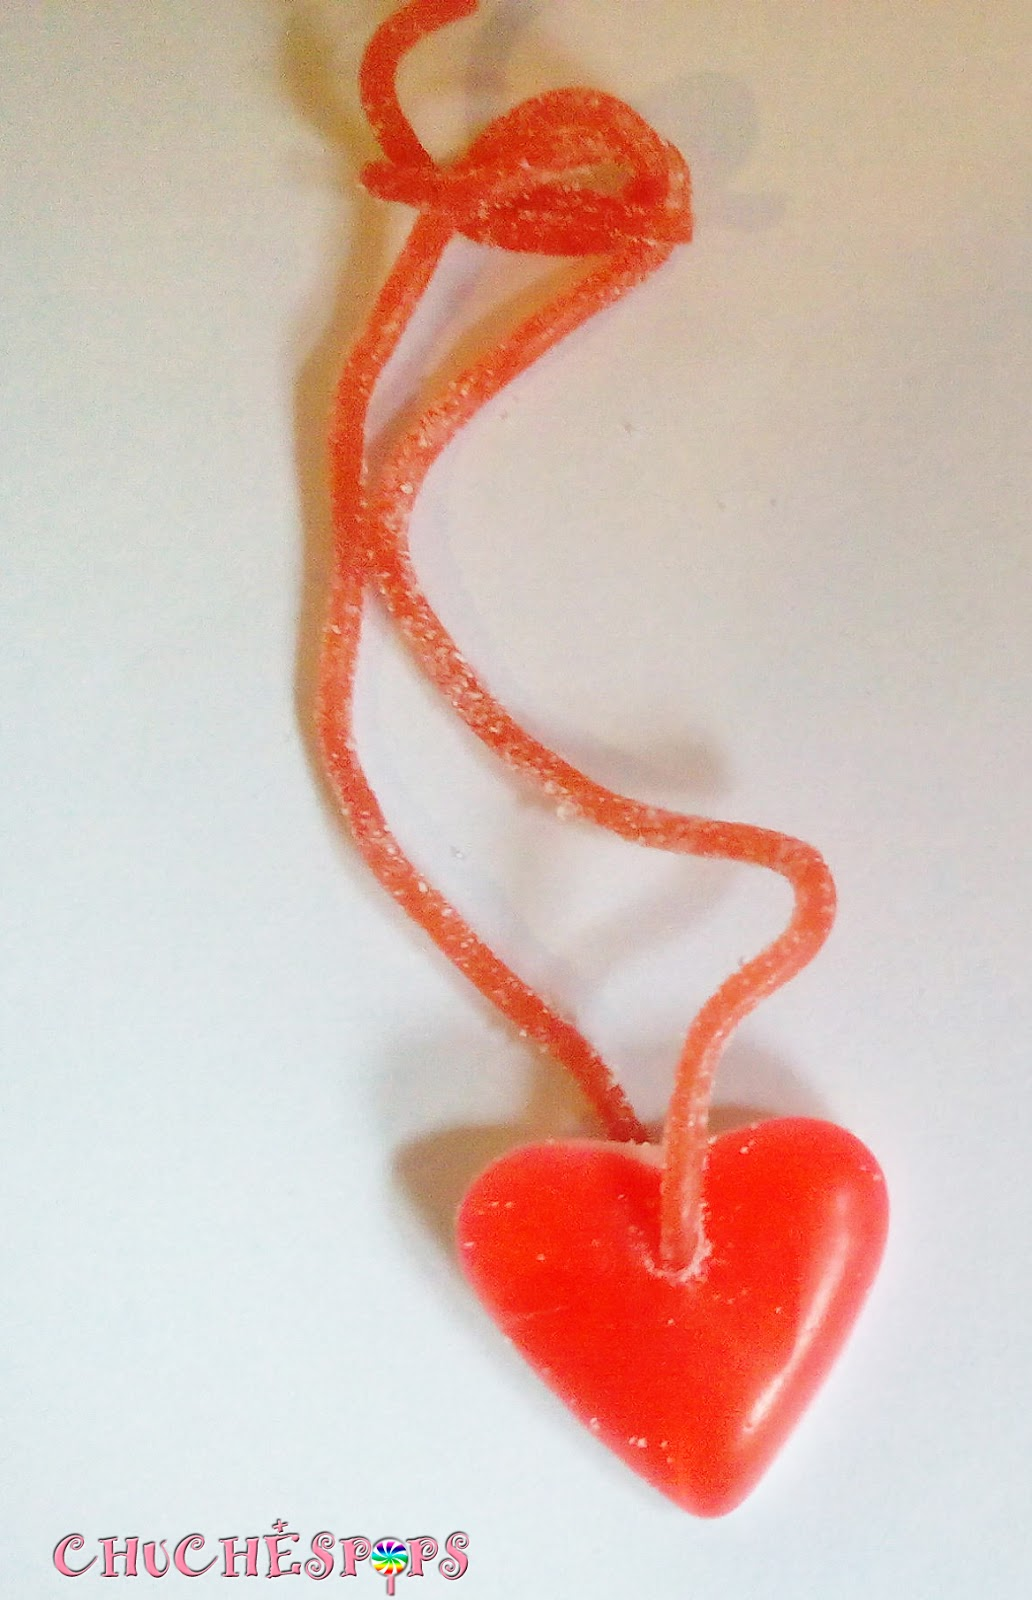 Collar de chuches Colgante corazon chuches